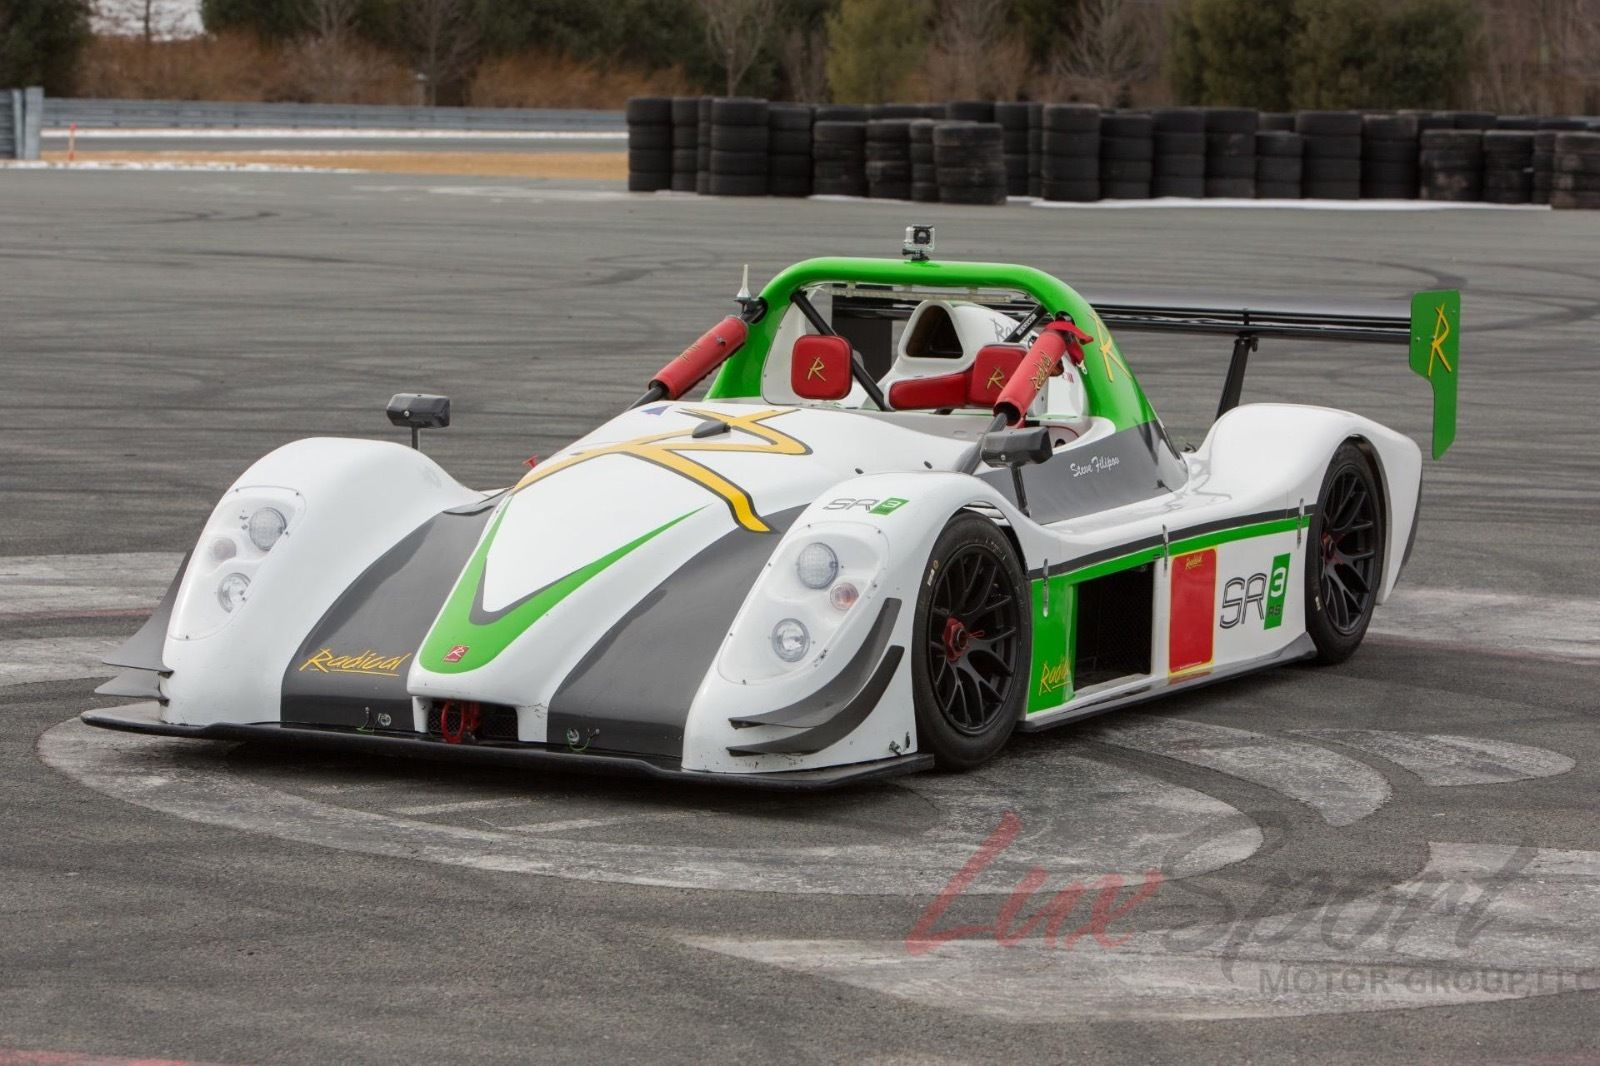 2009 Radical SR3 RS Race Car for sale